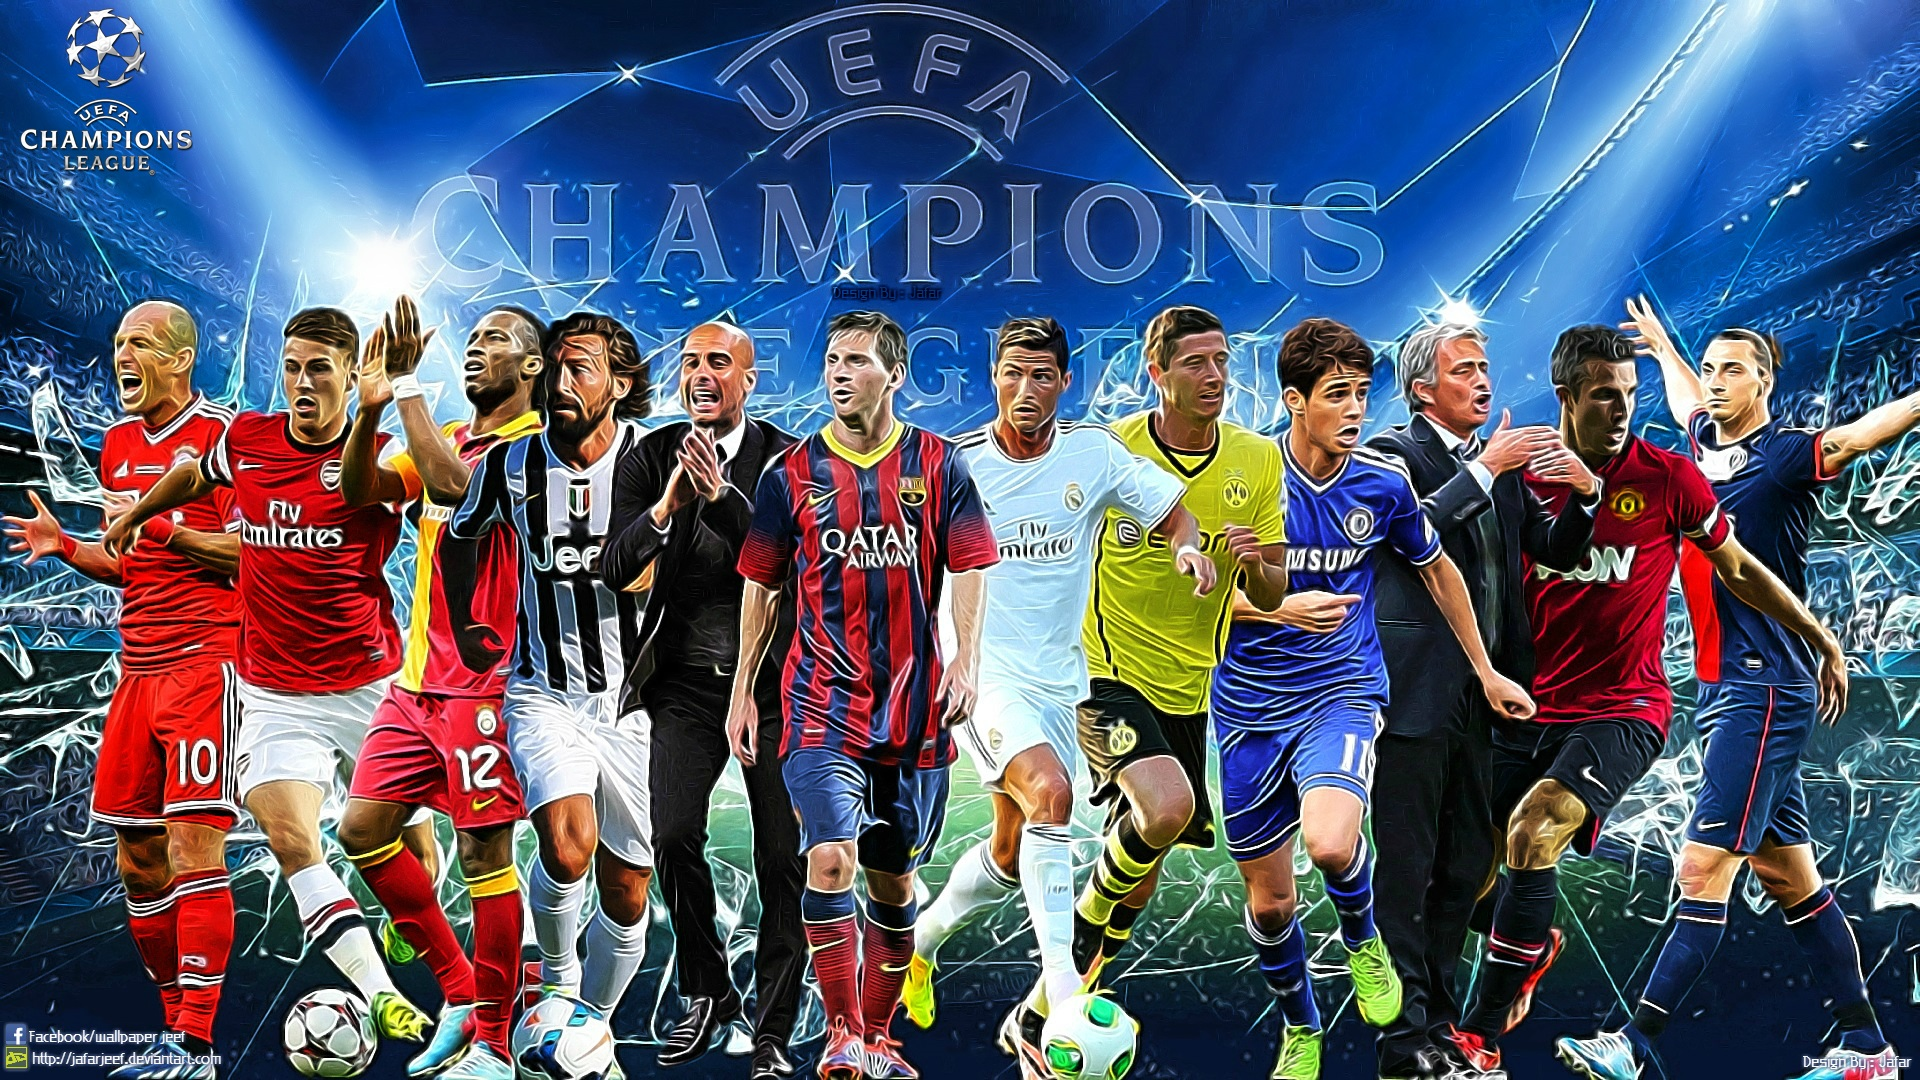 6 UEFA Champions League HD Wallpapers Backgrounds